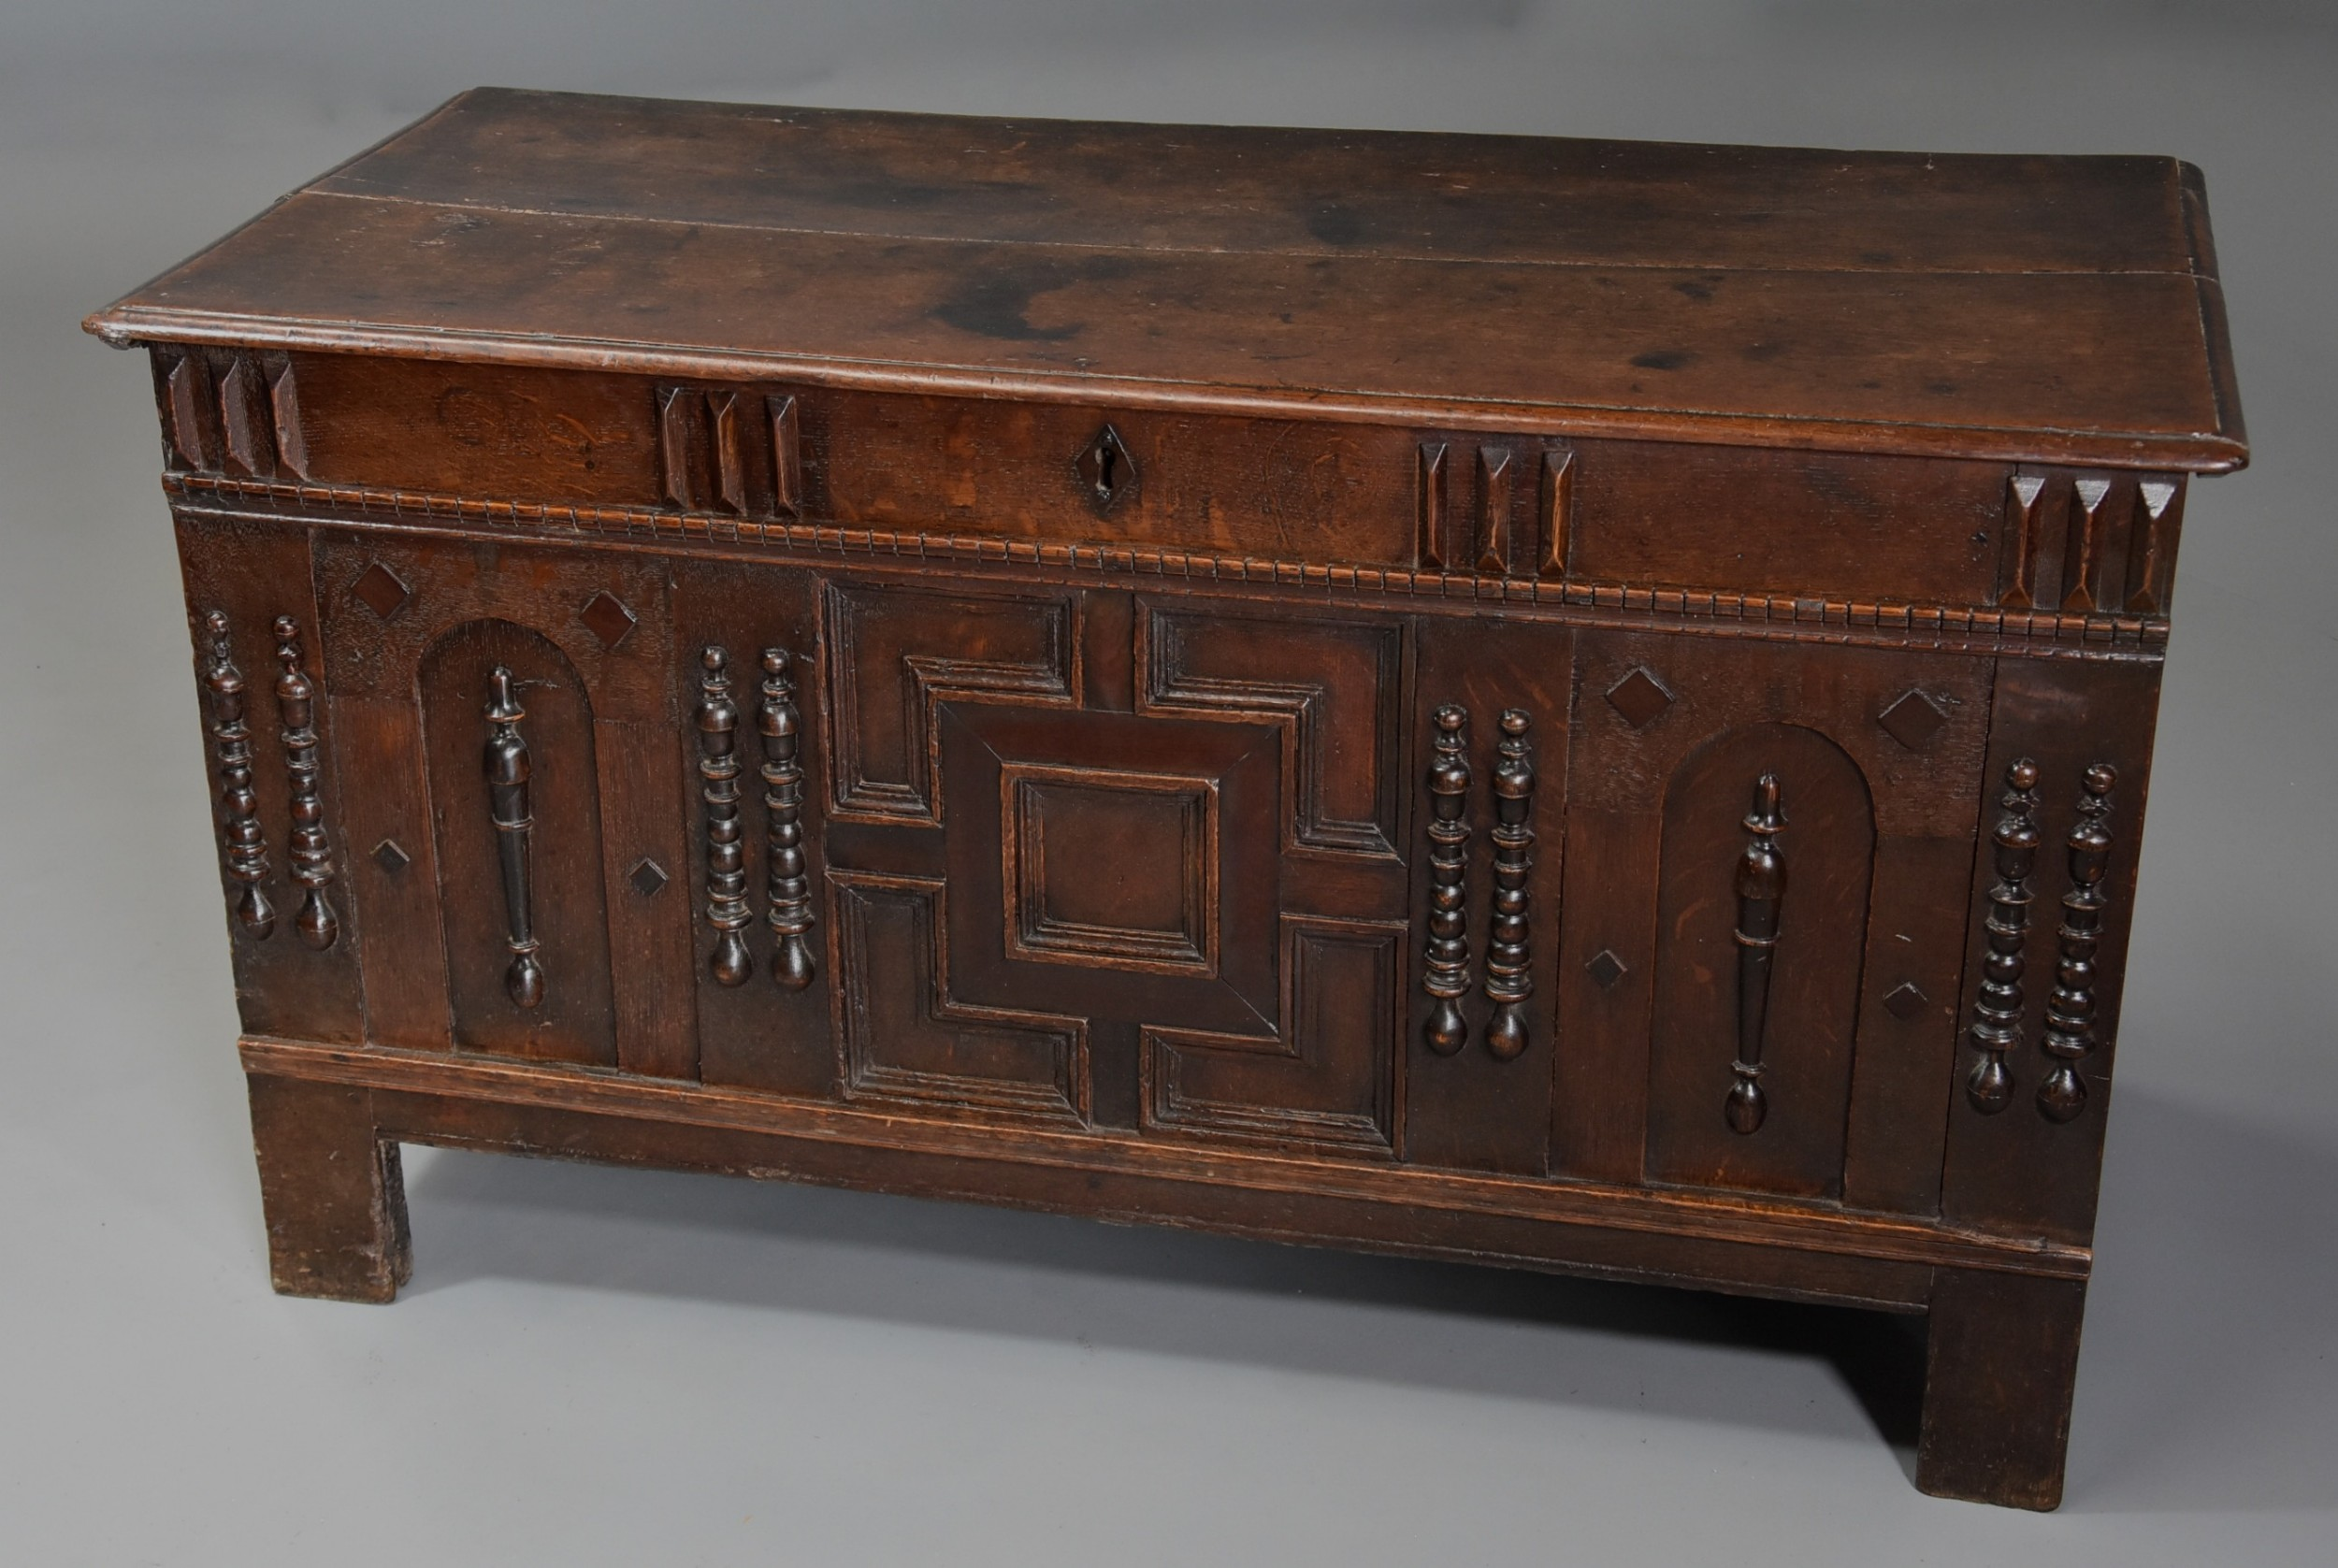 rare midlate 17th century oak moulded front coffer with fine patina